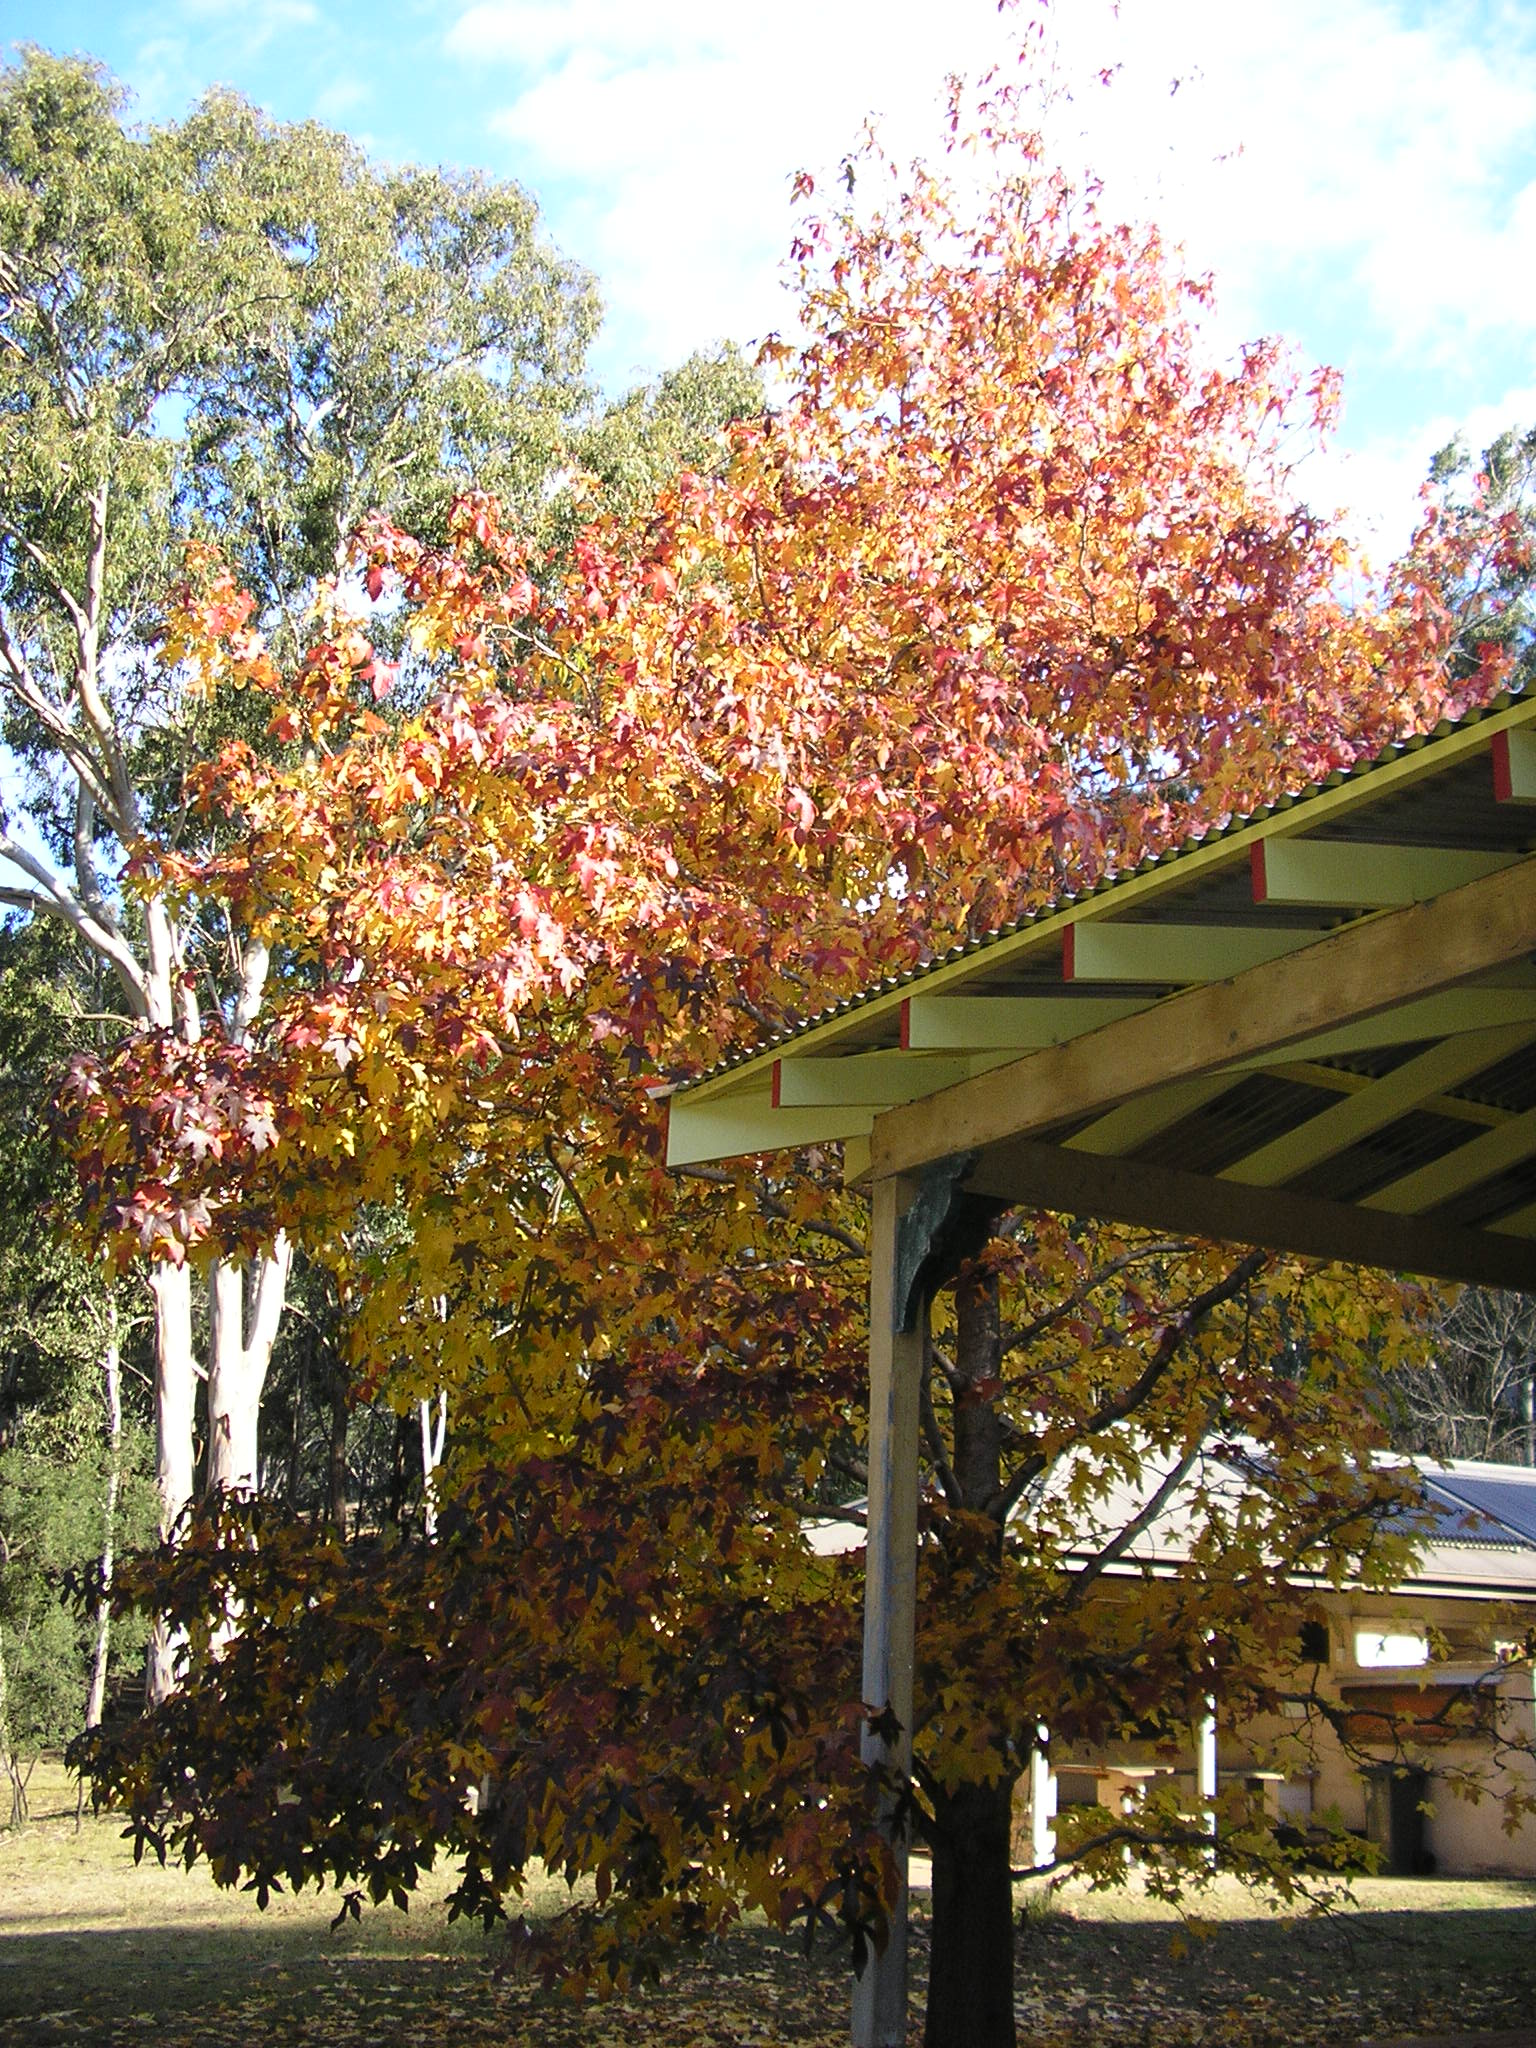 The new verandah roof